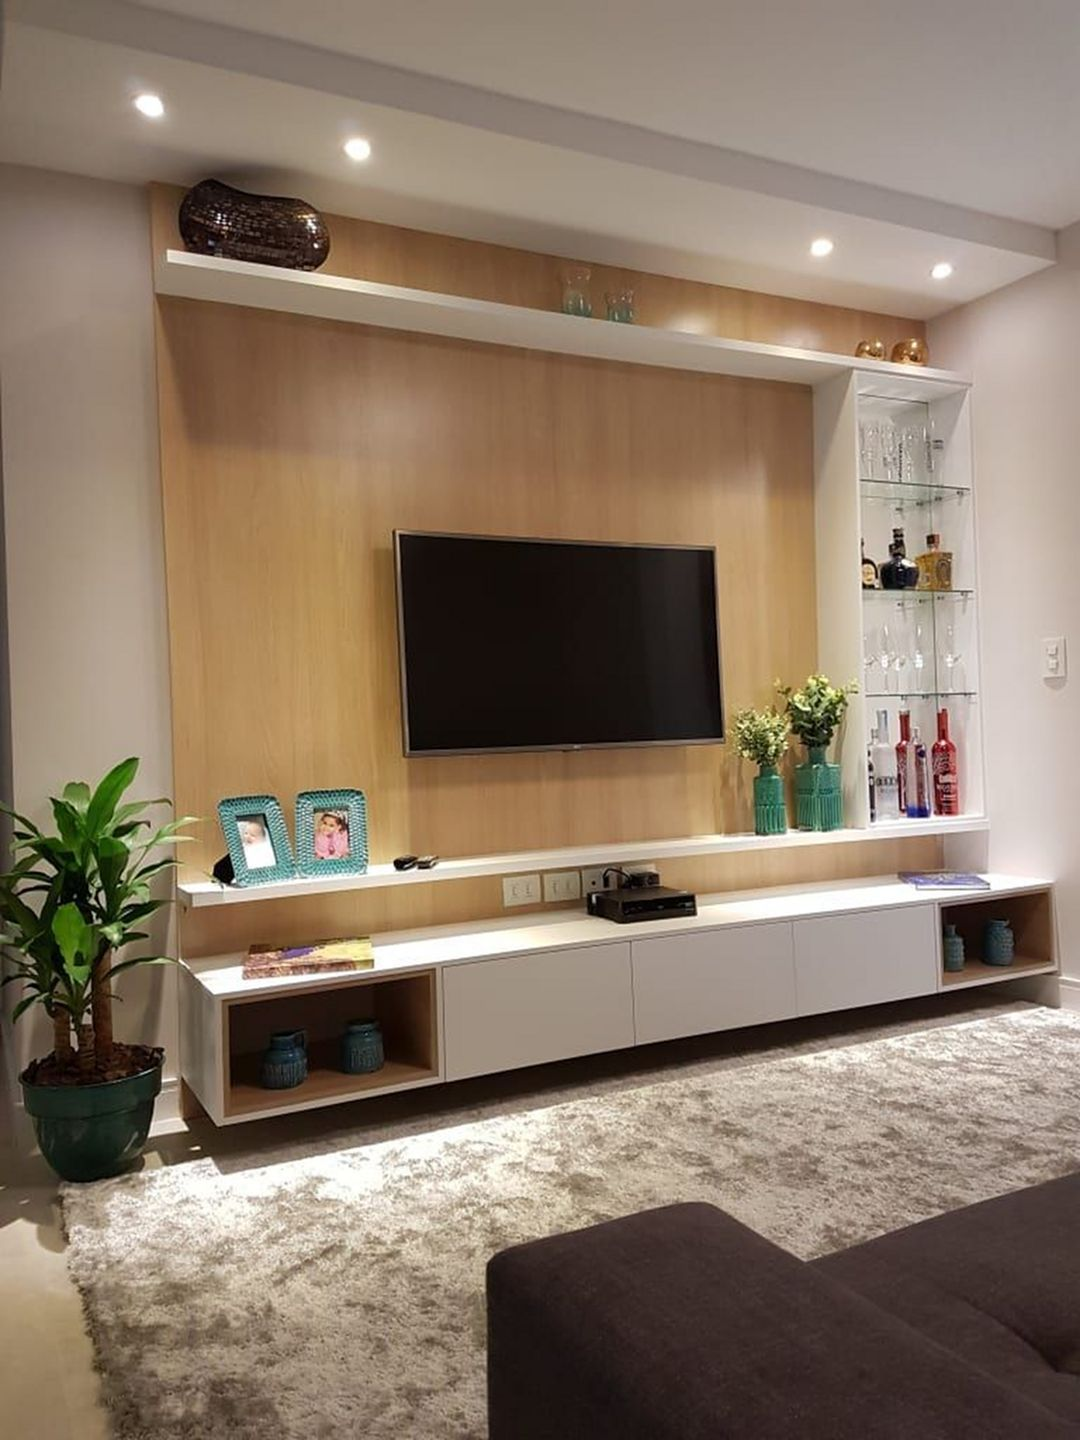 Pin By Kam Wai Lok On Allt Tv Room Design Living Room Tv Wall Wall Tv Unit Design